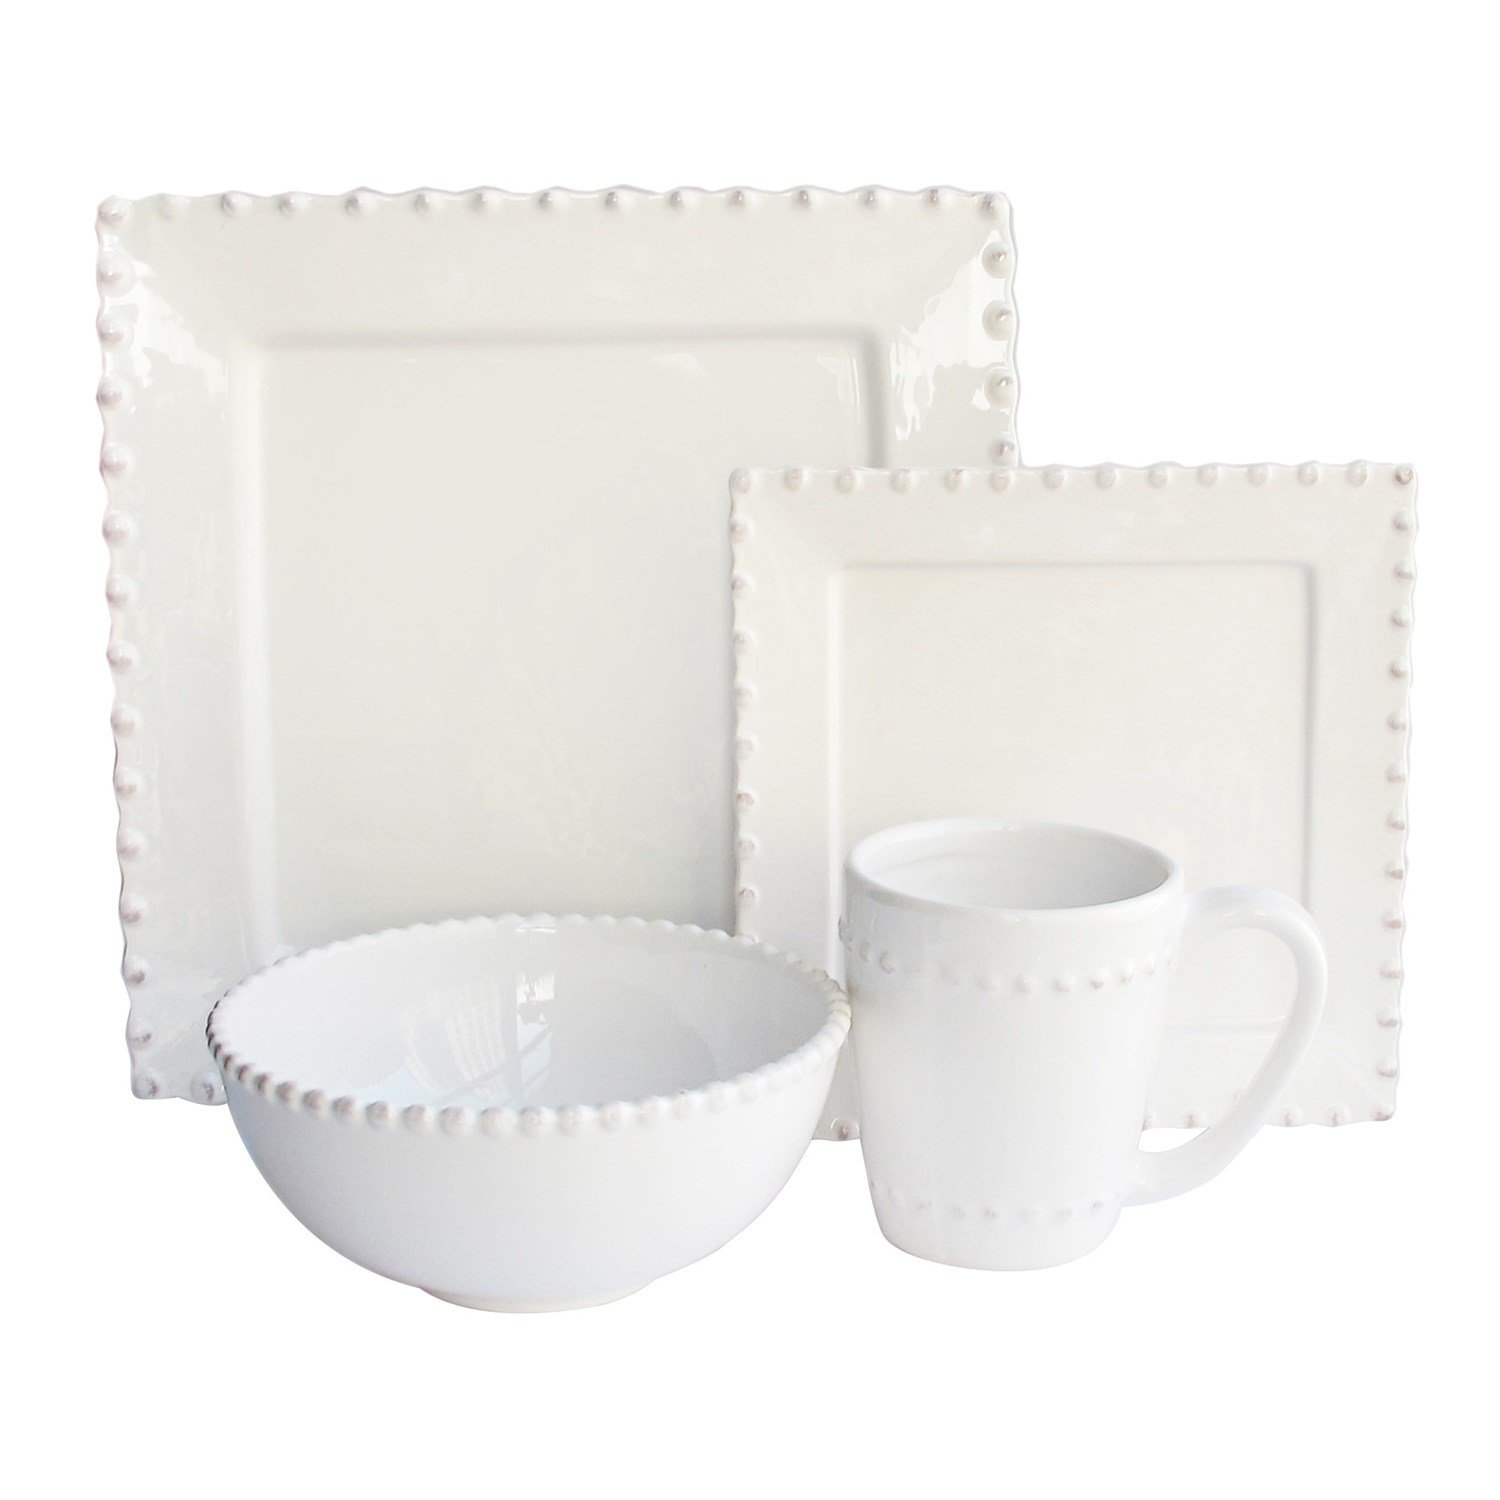 Christmas Tablescape Décor - White Bianca Bead square dolomite 16-Piece dinnerware set - Service for 4 by American Atelier